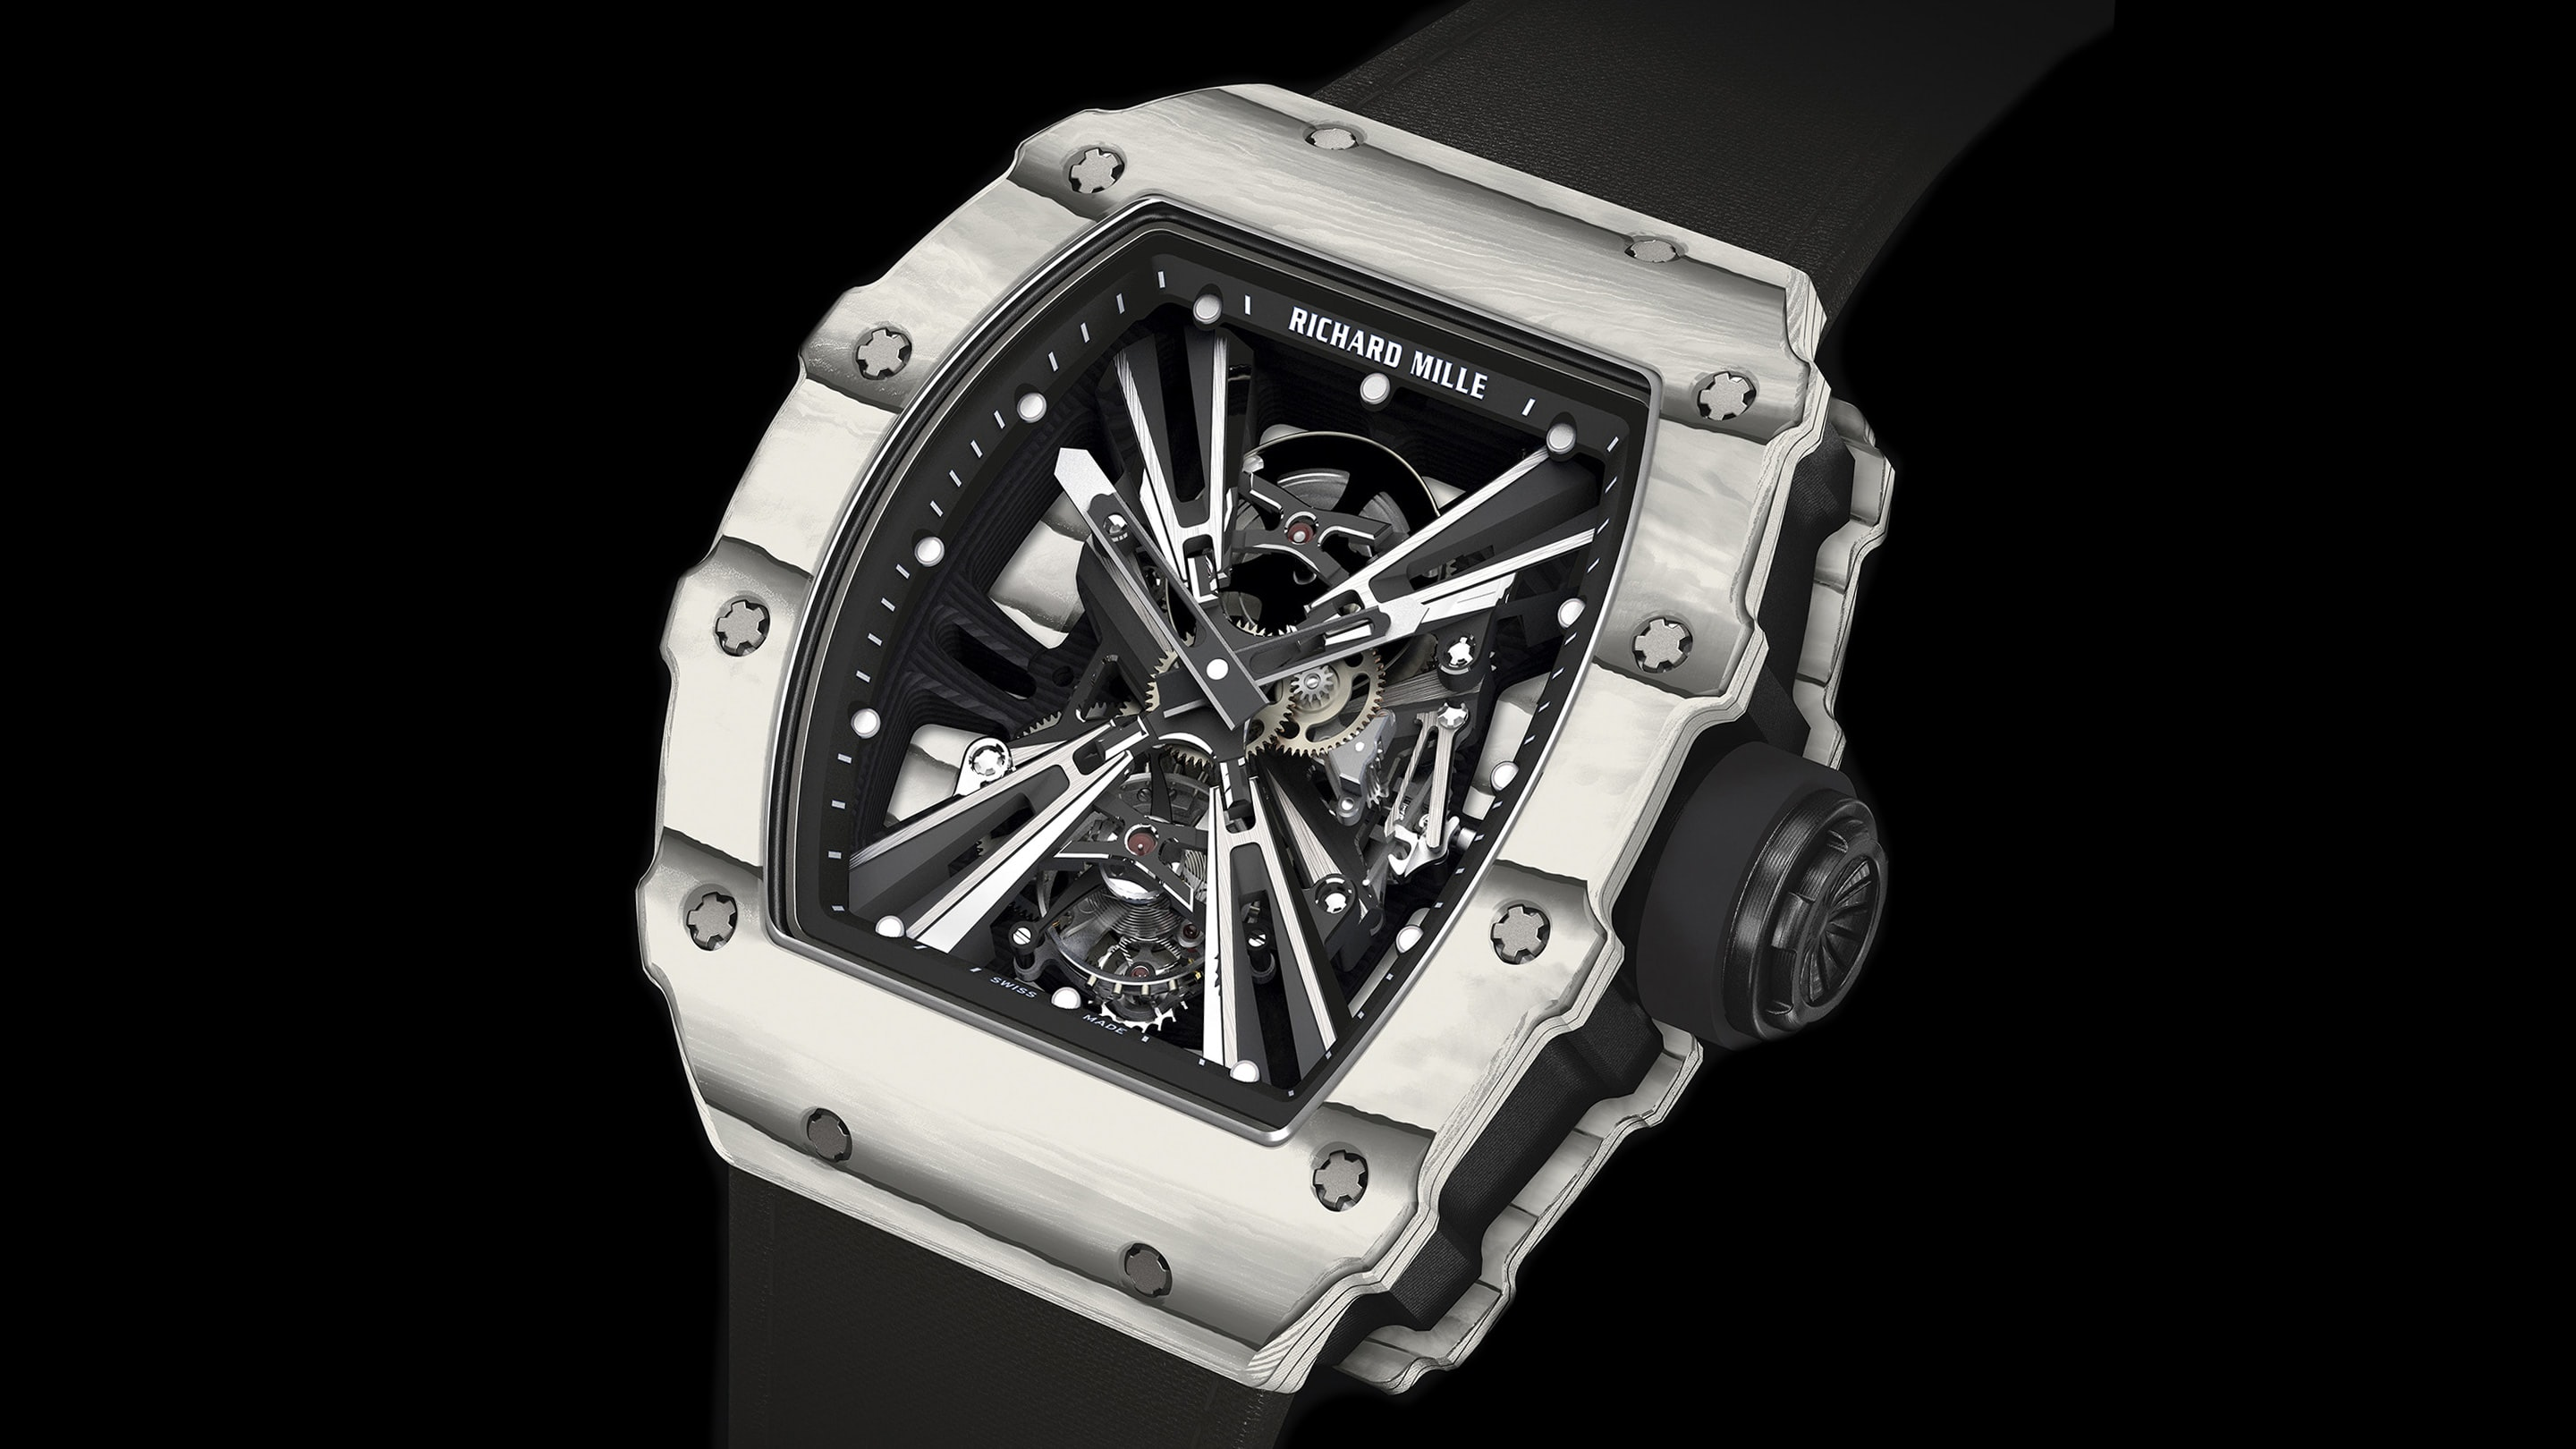 Introducing: The Richard Mille RM 12-01 Tourbillon